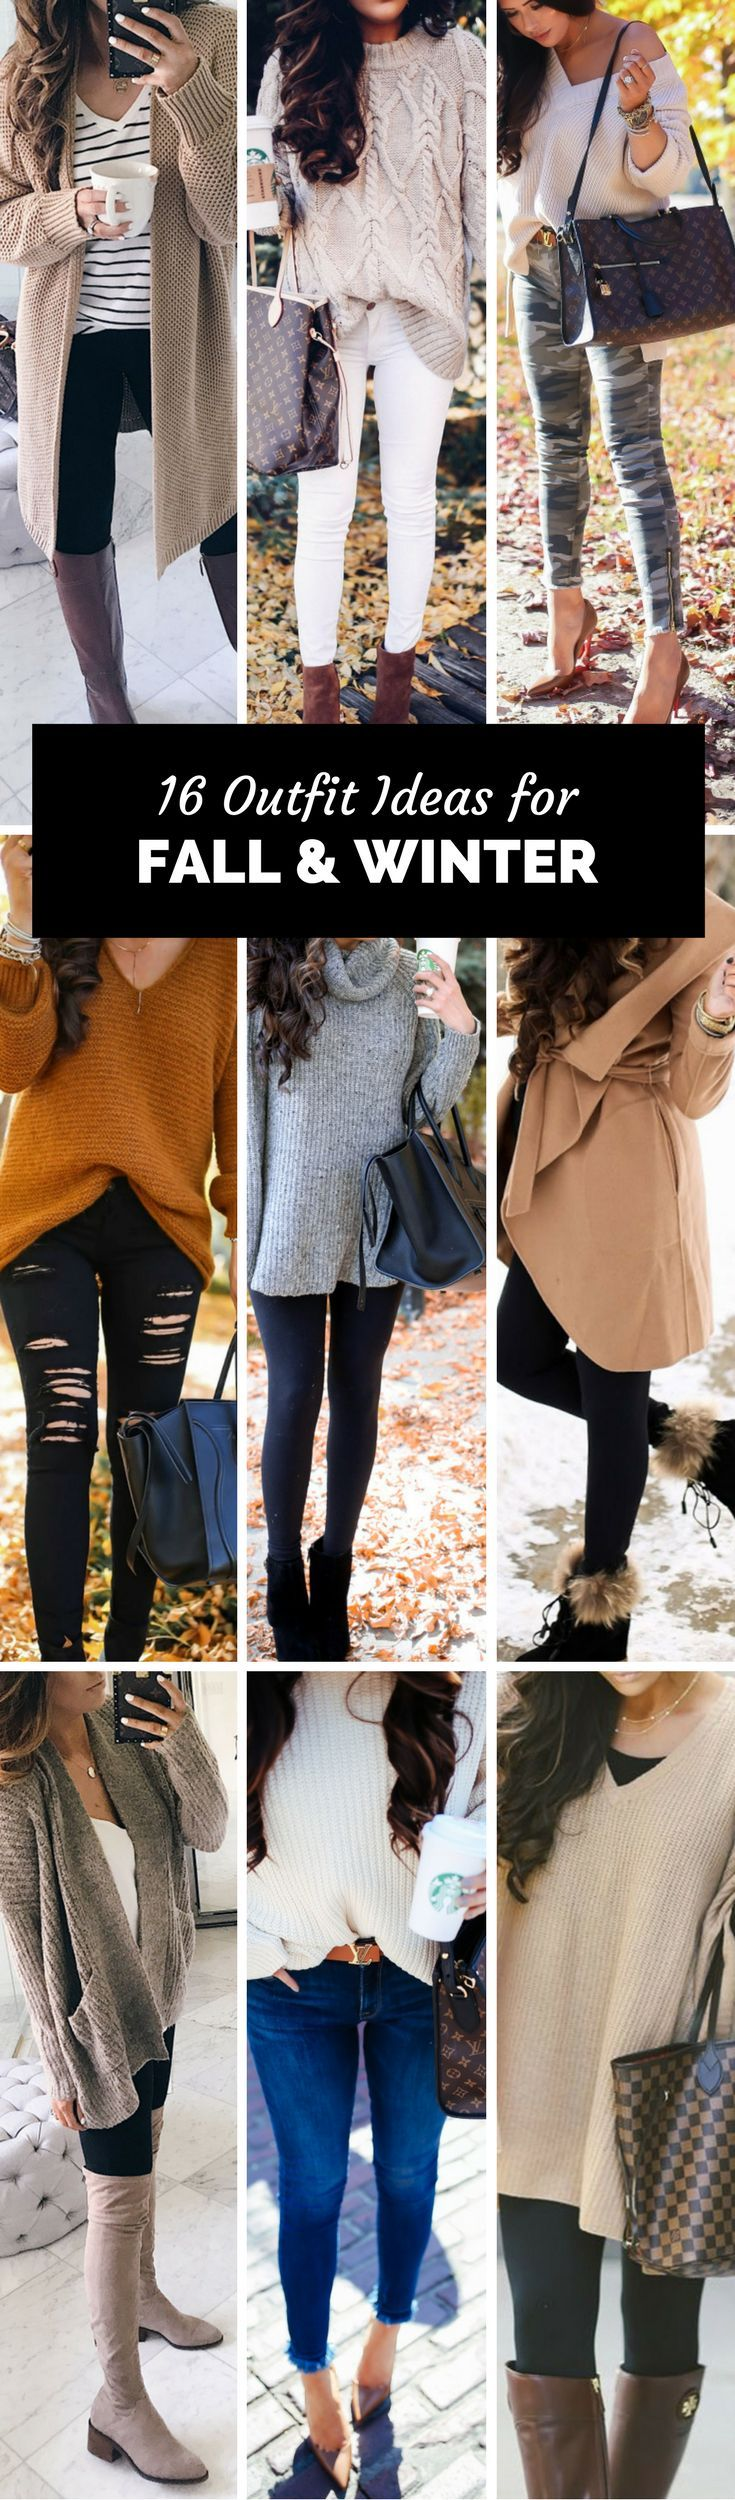 c1b5f0378b2 cute and casual womens fall fashion - cute outfits for thanksgiving!! by   emilyanngemma (love her blog - she gives all details)